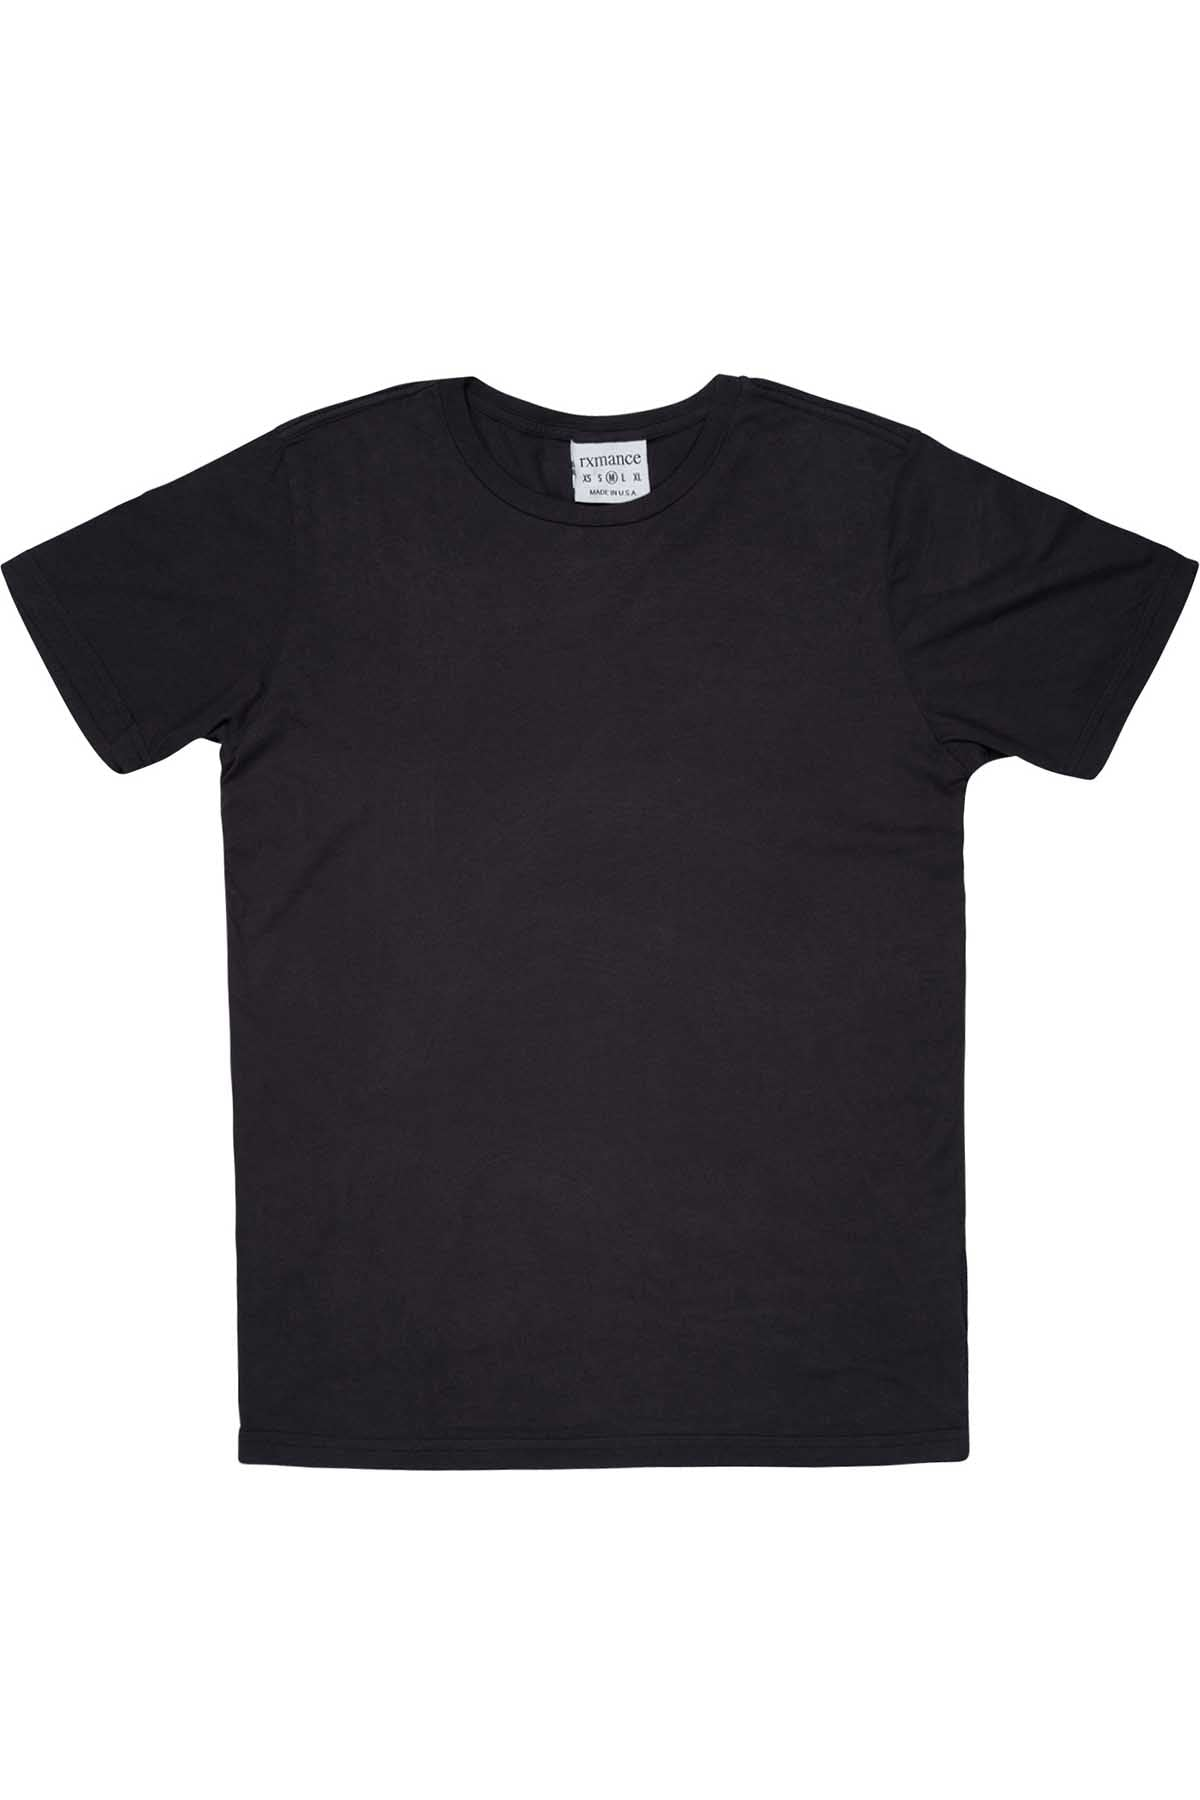 Rxmance Unisex Phantom Black Crew Neck Tee